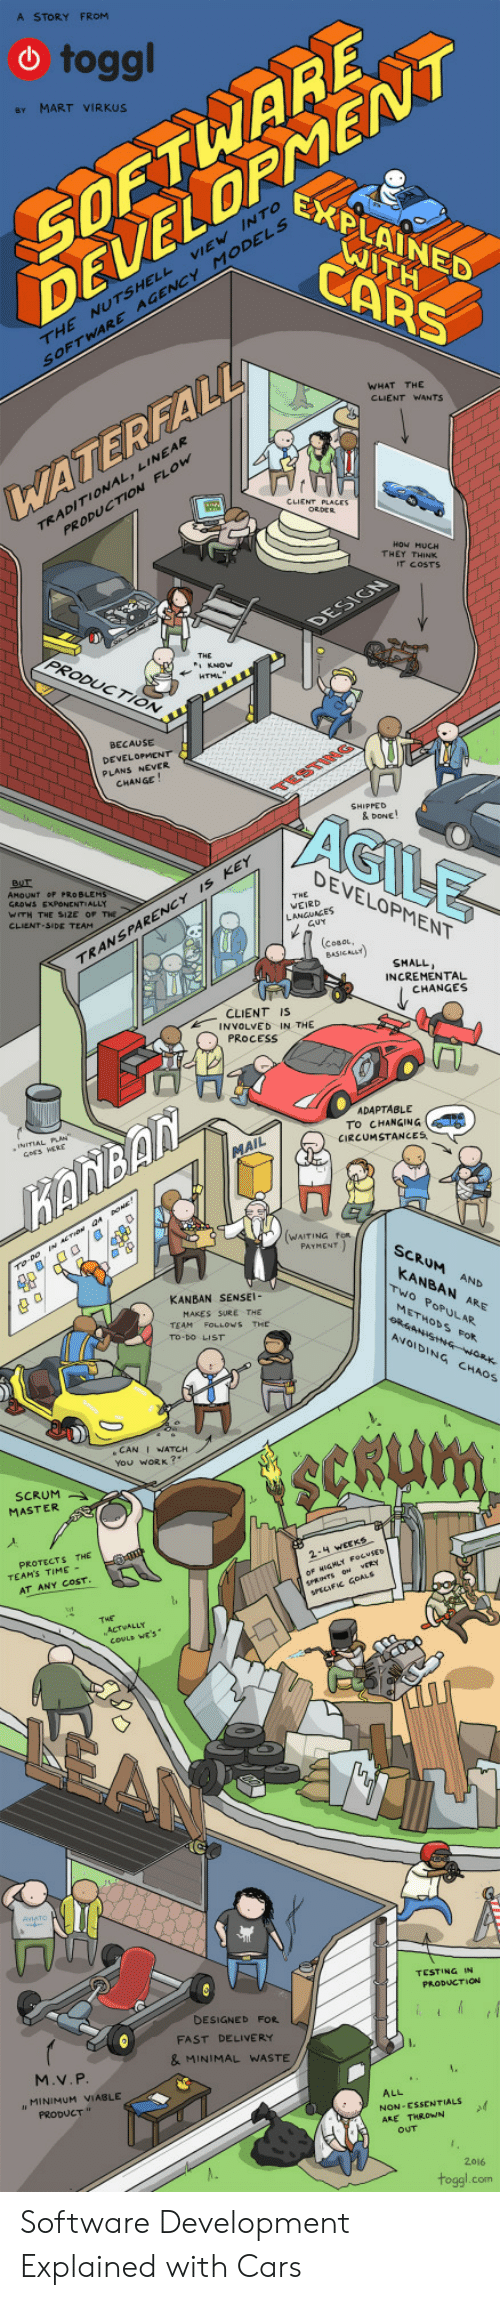 """Cars, Weird, and Work: A STORY FROM  SOETWARE  ELOPNENNT  toggl  e MART VIRKUS  EXPLAINED  INTo  MODELS  ATH  CARS  THE NUTSHELL  SOFTWARE  AGENCY  WHAT THE  CLIENT WANTS  INEAR  WATEREAL  TRADITIONAL, L  PRODUCTIon  THEY THINK  IT COSTS  PRODUCTION  BECAUSE  DEVELOPMENT  PLANS NEVER  CHANGE  AGILE  & DONE!  DEVELOPMENT  AMOUNT OF PRO BLEM  GROWS EXPONENTIALLY  WITH THE SIZE OF  CLIENT-SIDE TEAM  s KEY  THE  WEIRD  PARENCY  RAN S  SMALL  INCREMENTAL  CHANGES  CLIENT IS  INVOLVED IN THE  PROCESS  ADAPTABLE  To CHANGING  CIRCUMSTANCES  ANBAN  WAITING FoR  SCRUM AND  KANBAN ARE  KANBAN SENSEI  Two PoPULAR.  MAKES SURE THE  TEAM FOLLOWS THE  To-DO LIST  METHODs FoR  AVOIDING CHAOS  e CAN I WATCH  You WORK?  SCRUM  MASTER  PROTECTS THE  TEAMS TIME -  AT ANY COST  ㄇ  TESTING IN  PRODUCTION  DESIGNEb FOR  FAST DELIVERY  & MINIMAL WASTE  M.V. P  MINIMUM VIABLE  PRODUCT""""  ALL  NON -ESSENTIALS  2016  toggl.com Software Development Explained with Cars"""